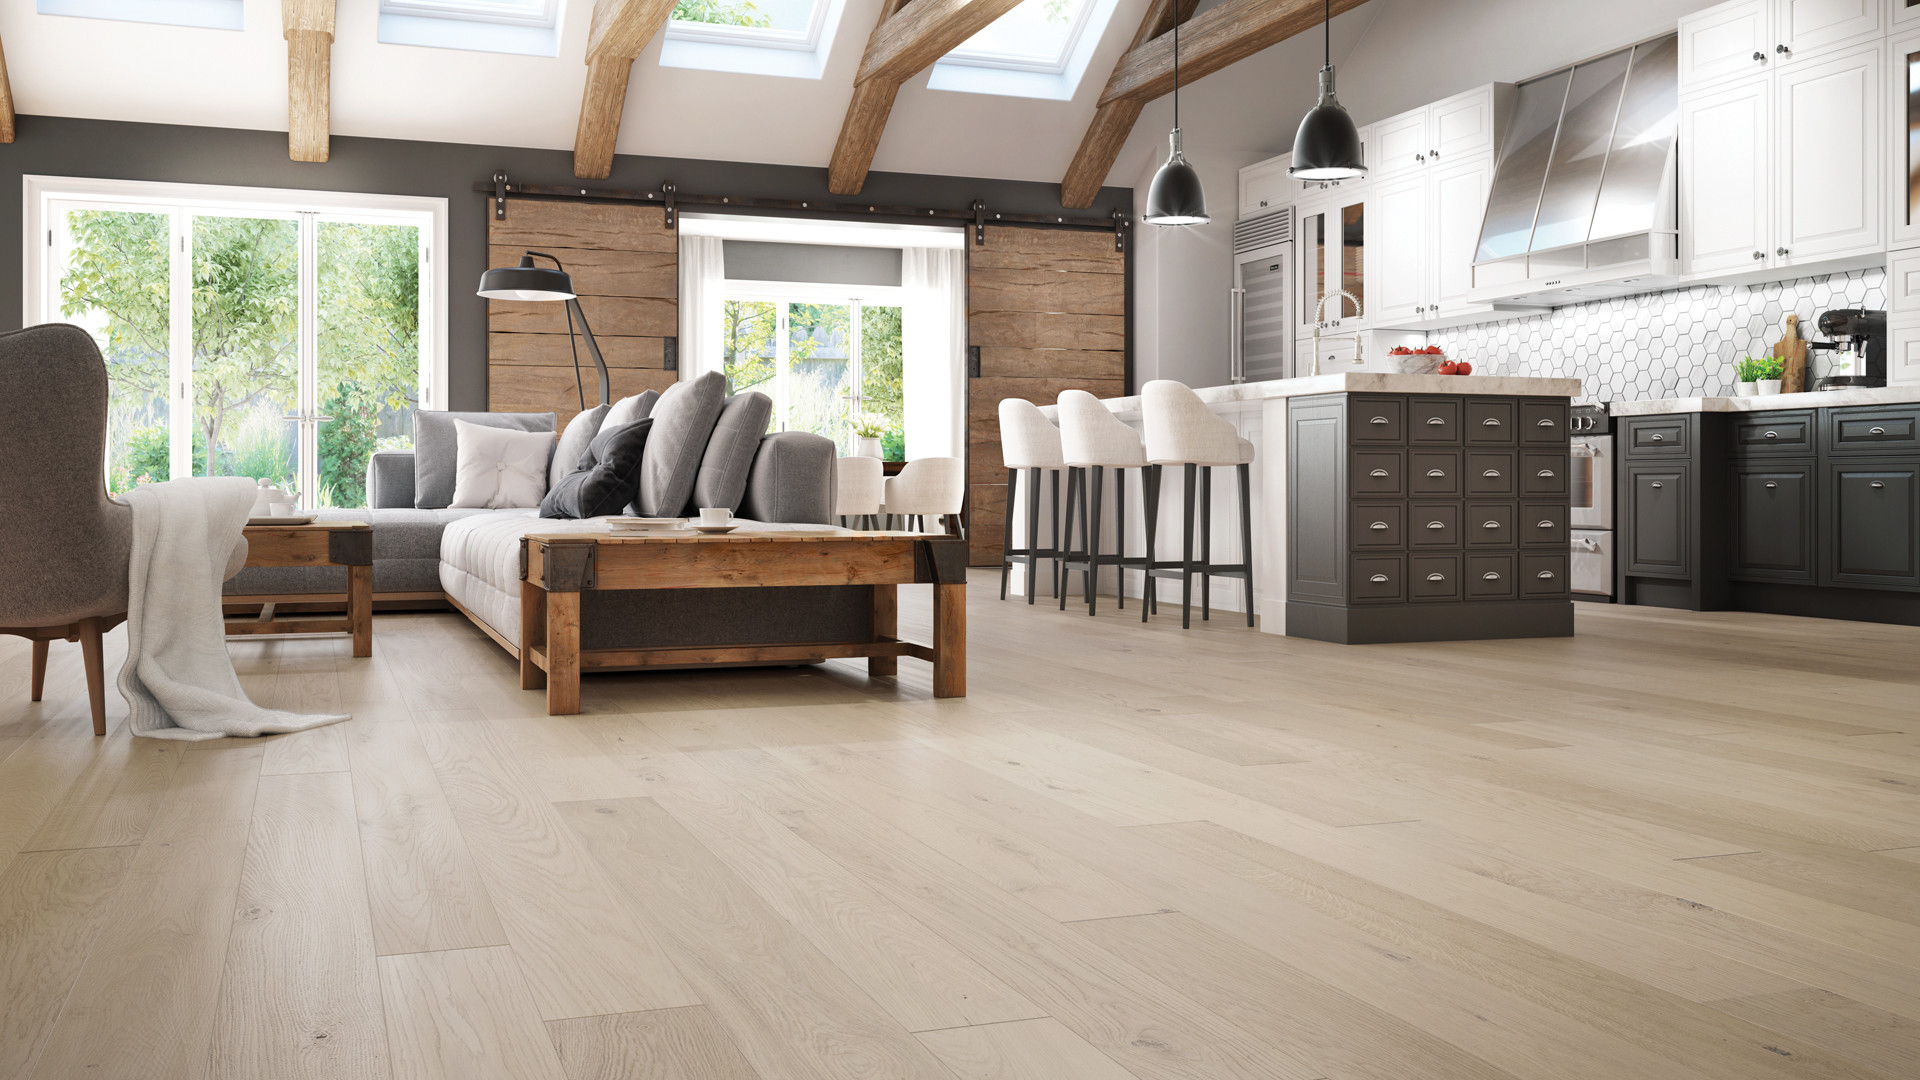 Engineered Hardwood Flooring Near Me Of 4 Latest Hardwood Flooring Trends Of 2018 Lauzon Flooring Throughout This Technology Brings Your Hardwood Floors and Well Being to A New Level by Improving Indoor Air Quality by Up to 85 and Decomposing Up to 99 6 Of